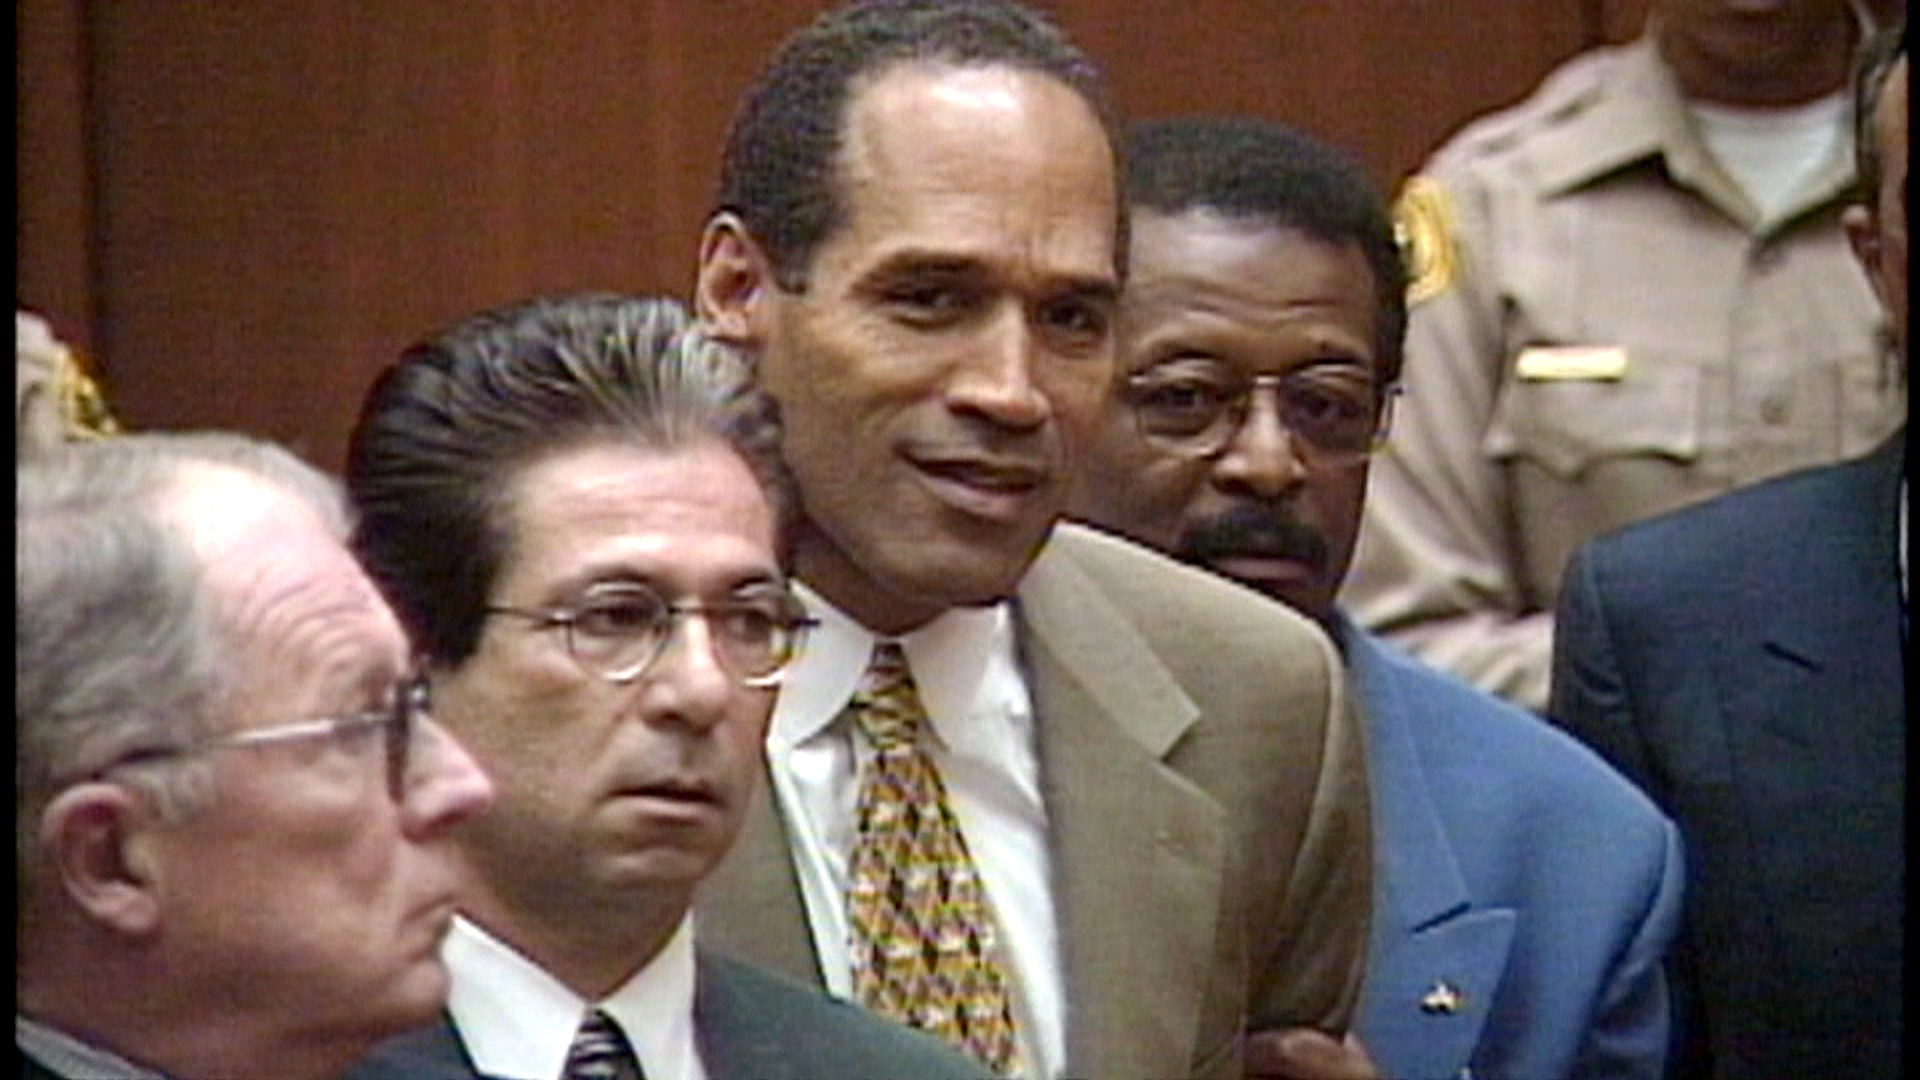 essay on the oj simpson trial Oj simpson: guilty this paper attempts to prove that oj simpson is guilty by giving evidence from both sides, and statements made by witnesses on june 12, 1994, two people were brutally killed.